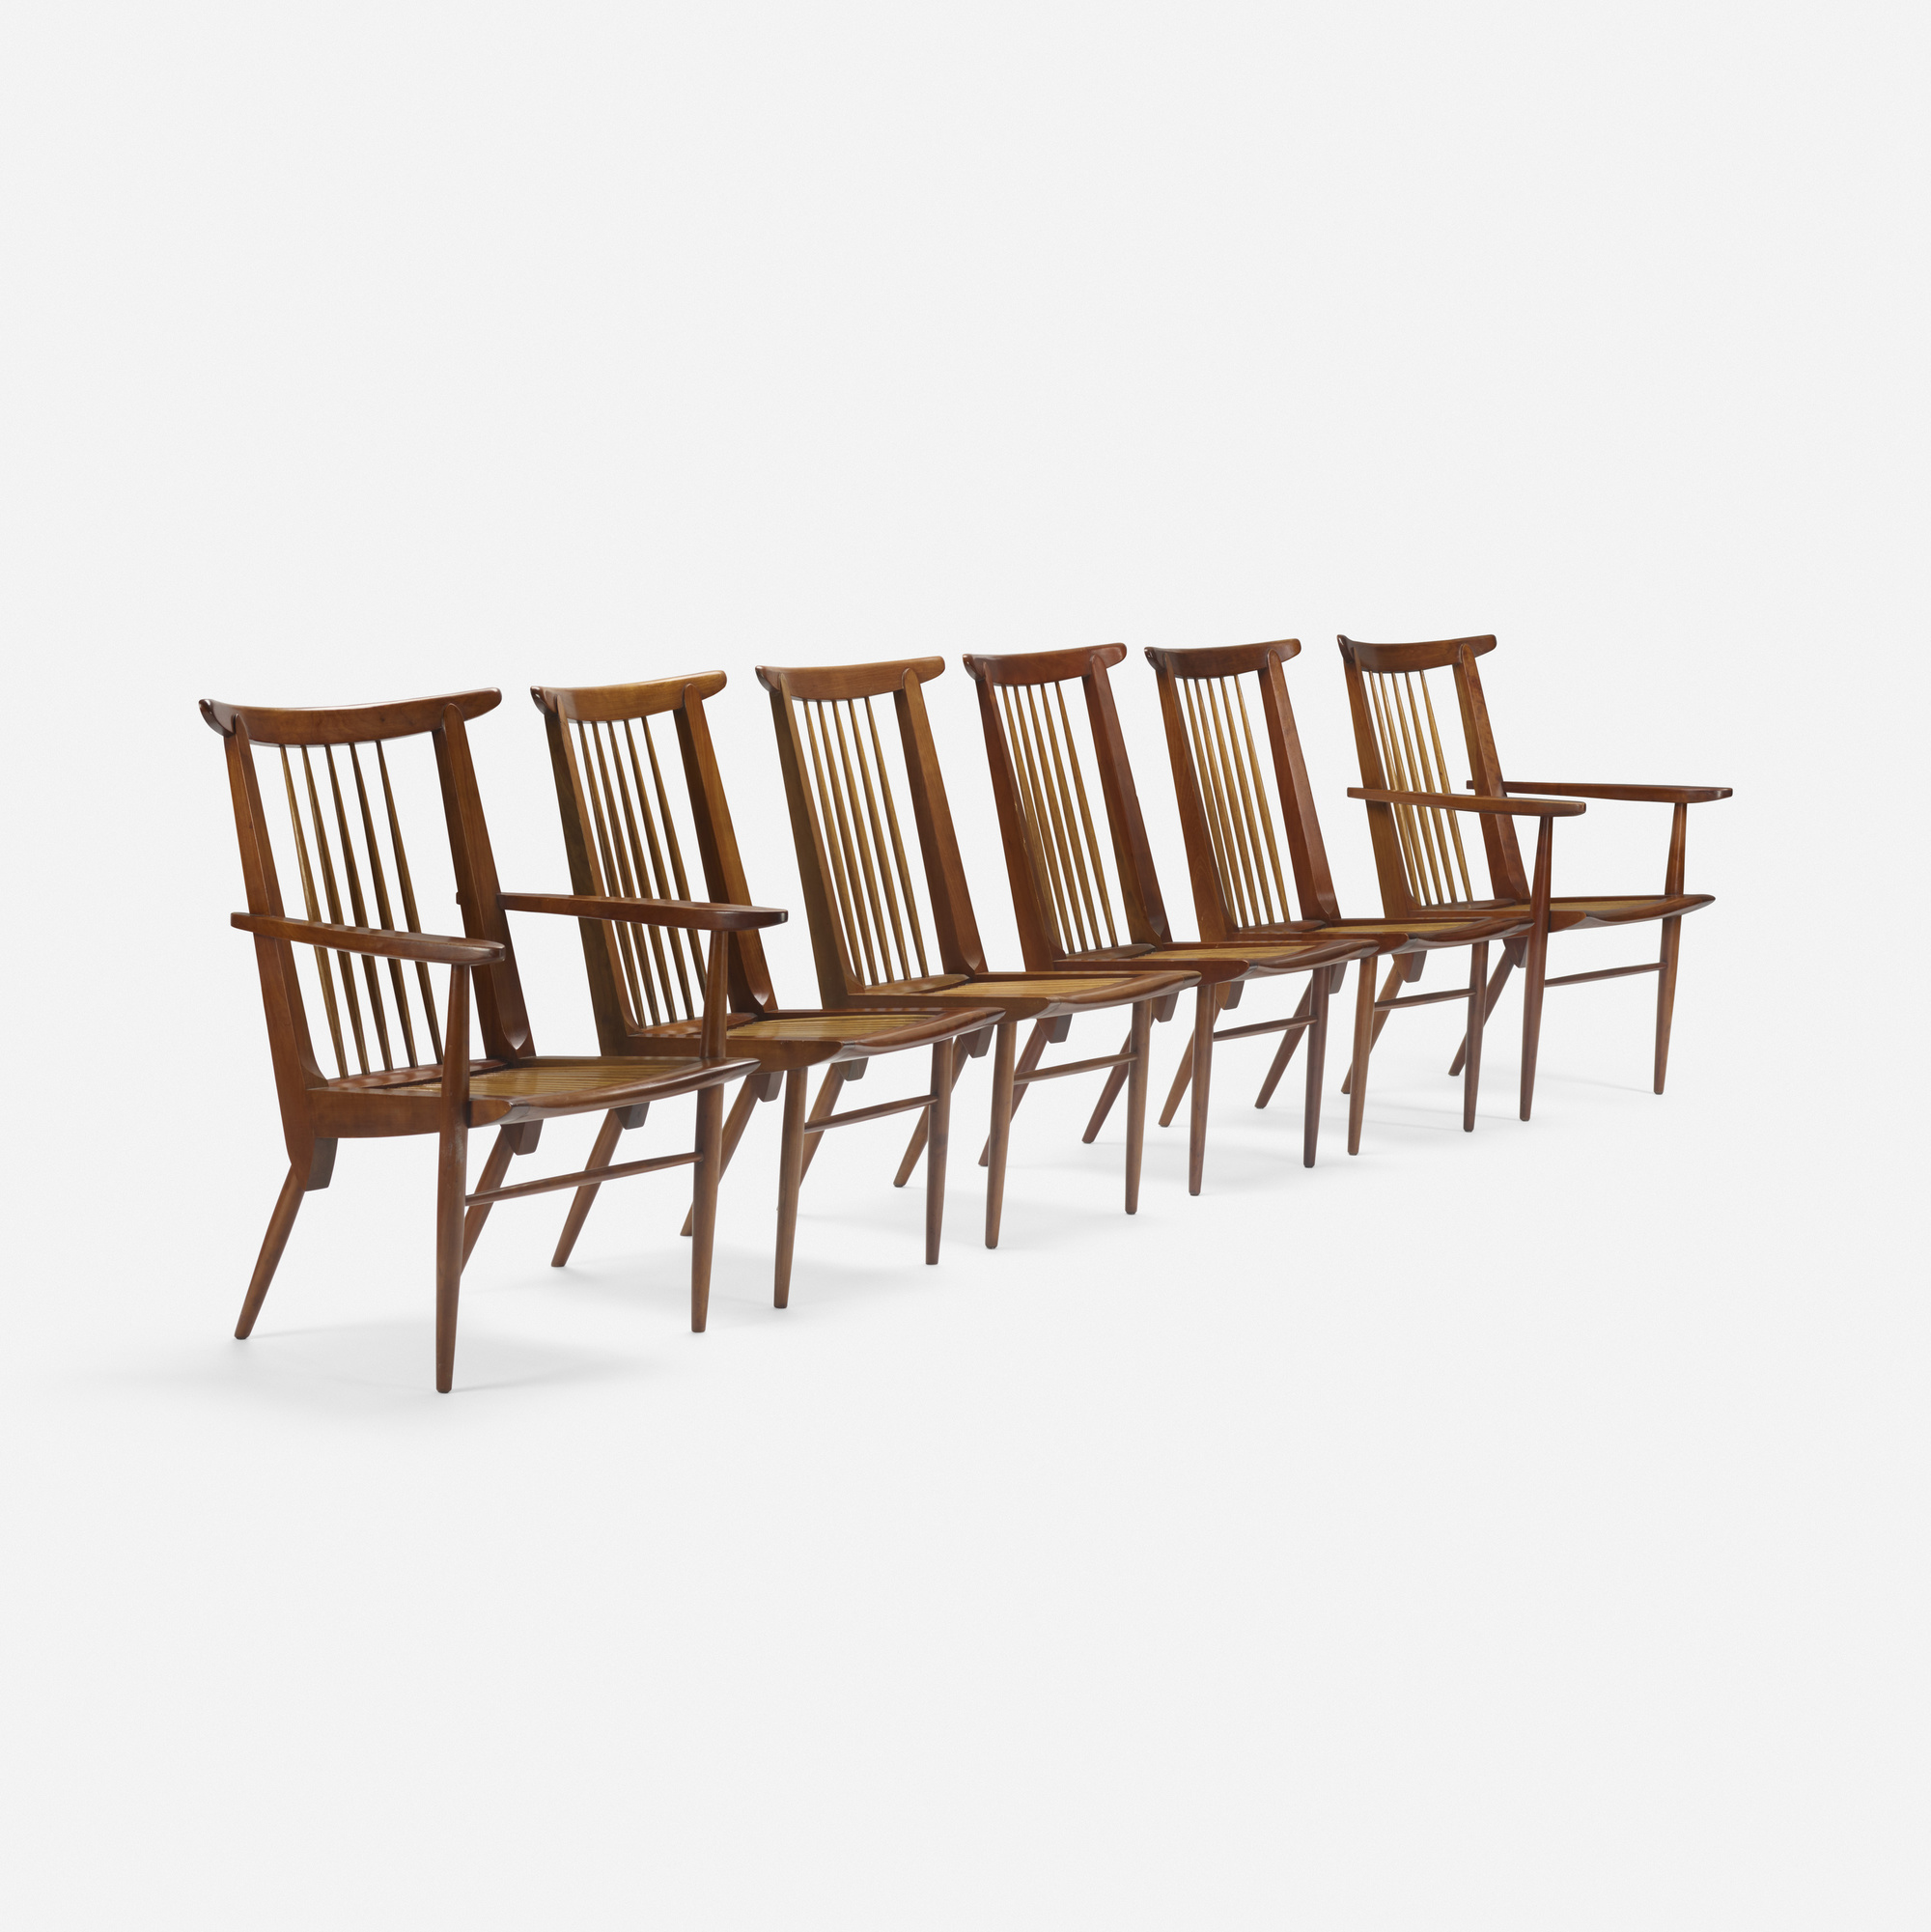 184: George Nakashima / Origins dining chairs model 259-W, set of six (1 of 4)